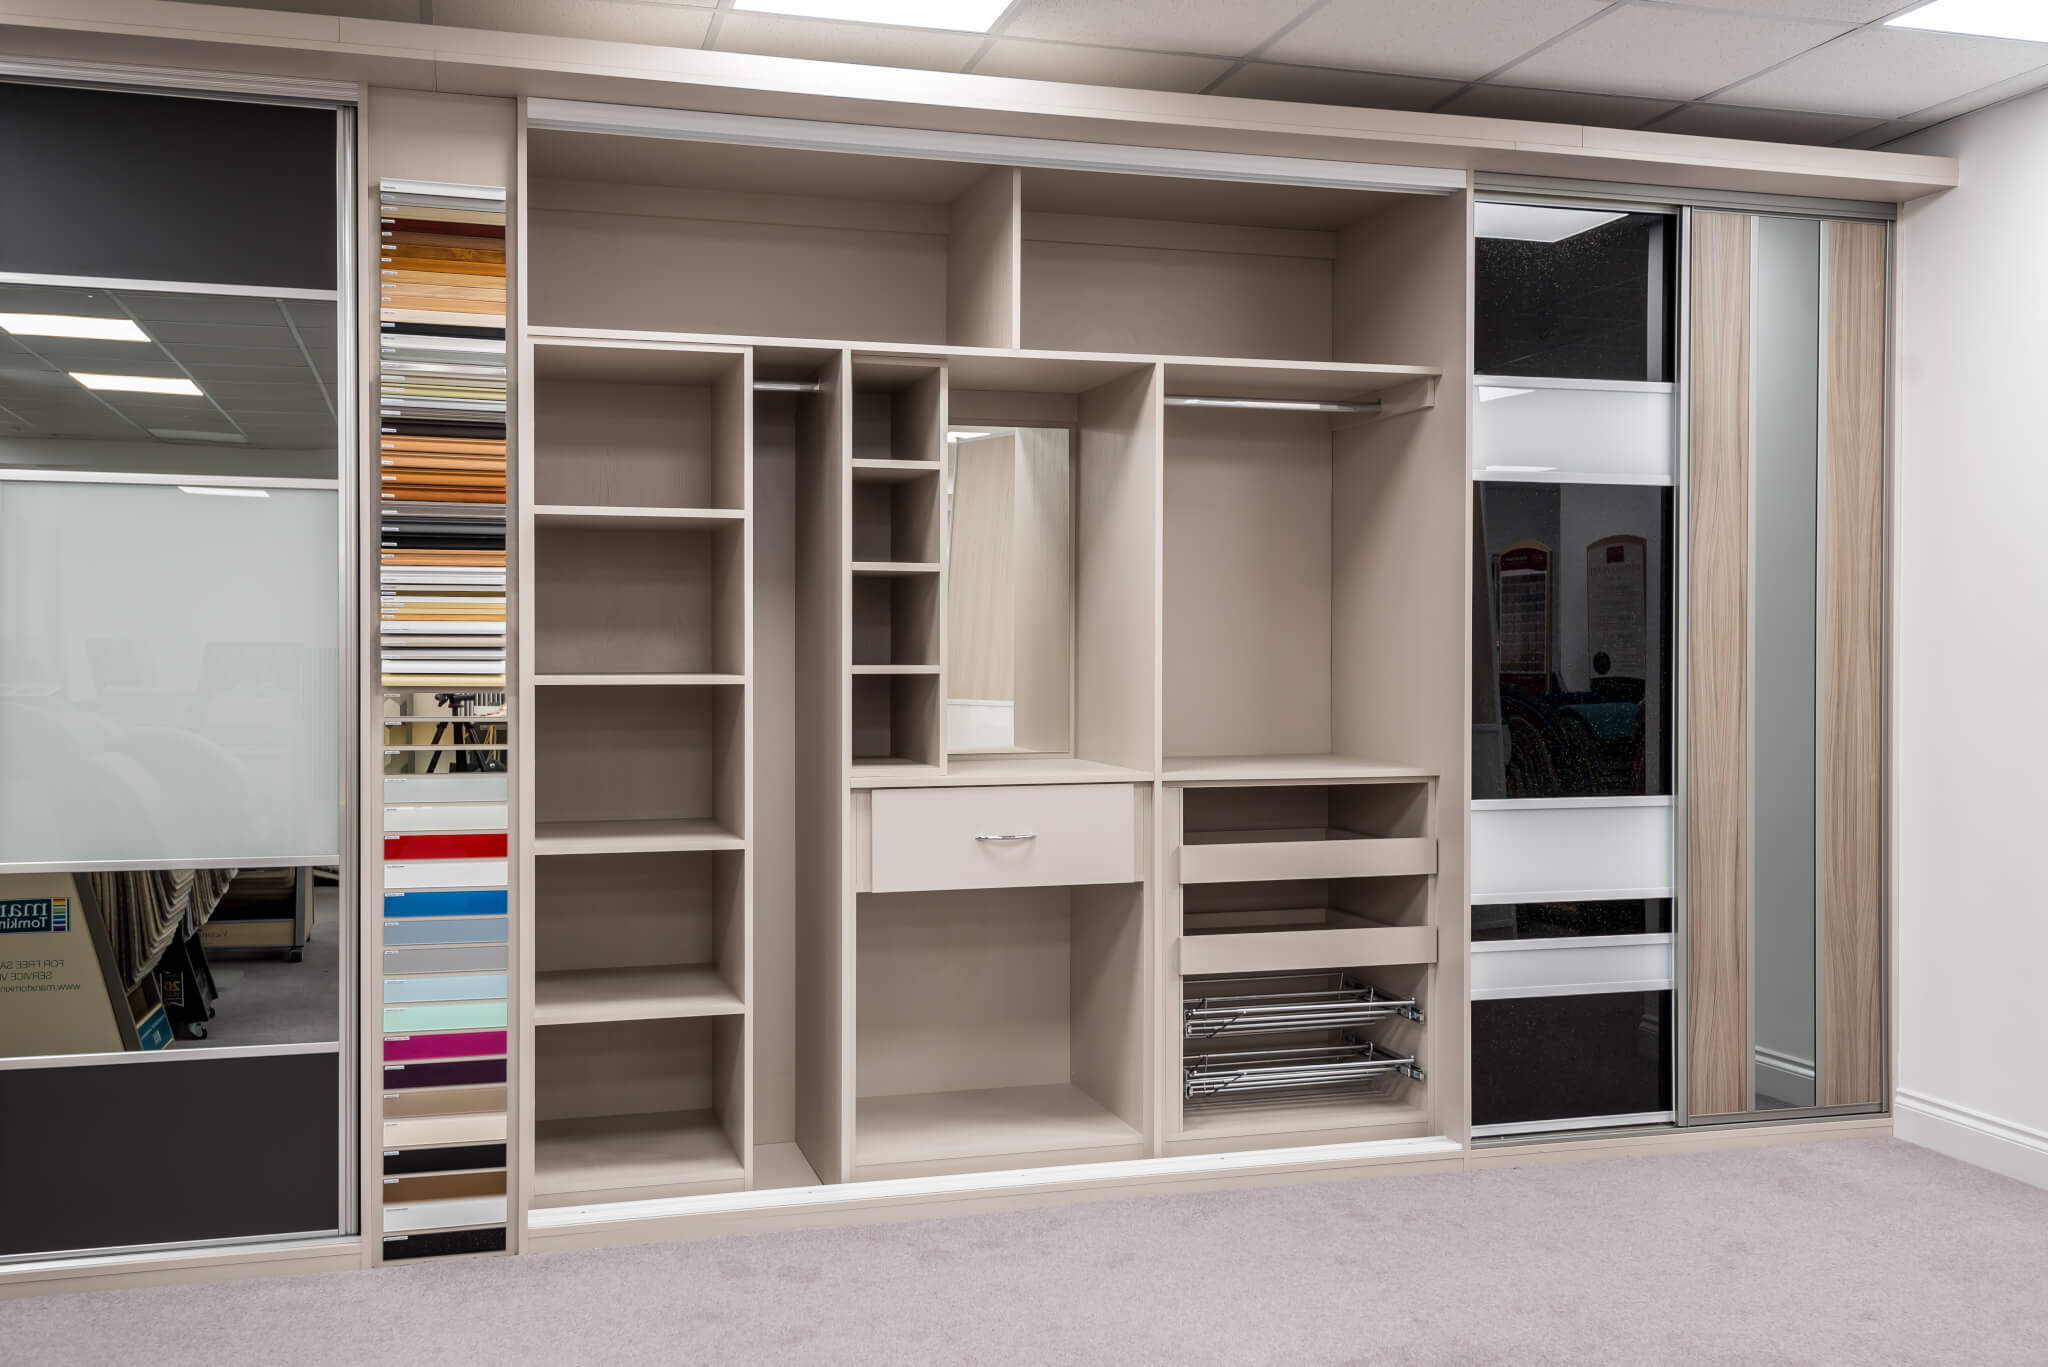 Designing The Perfect Fitted Wardrobe Shelves Vs Drawers